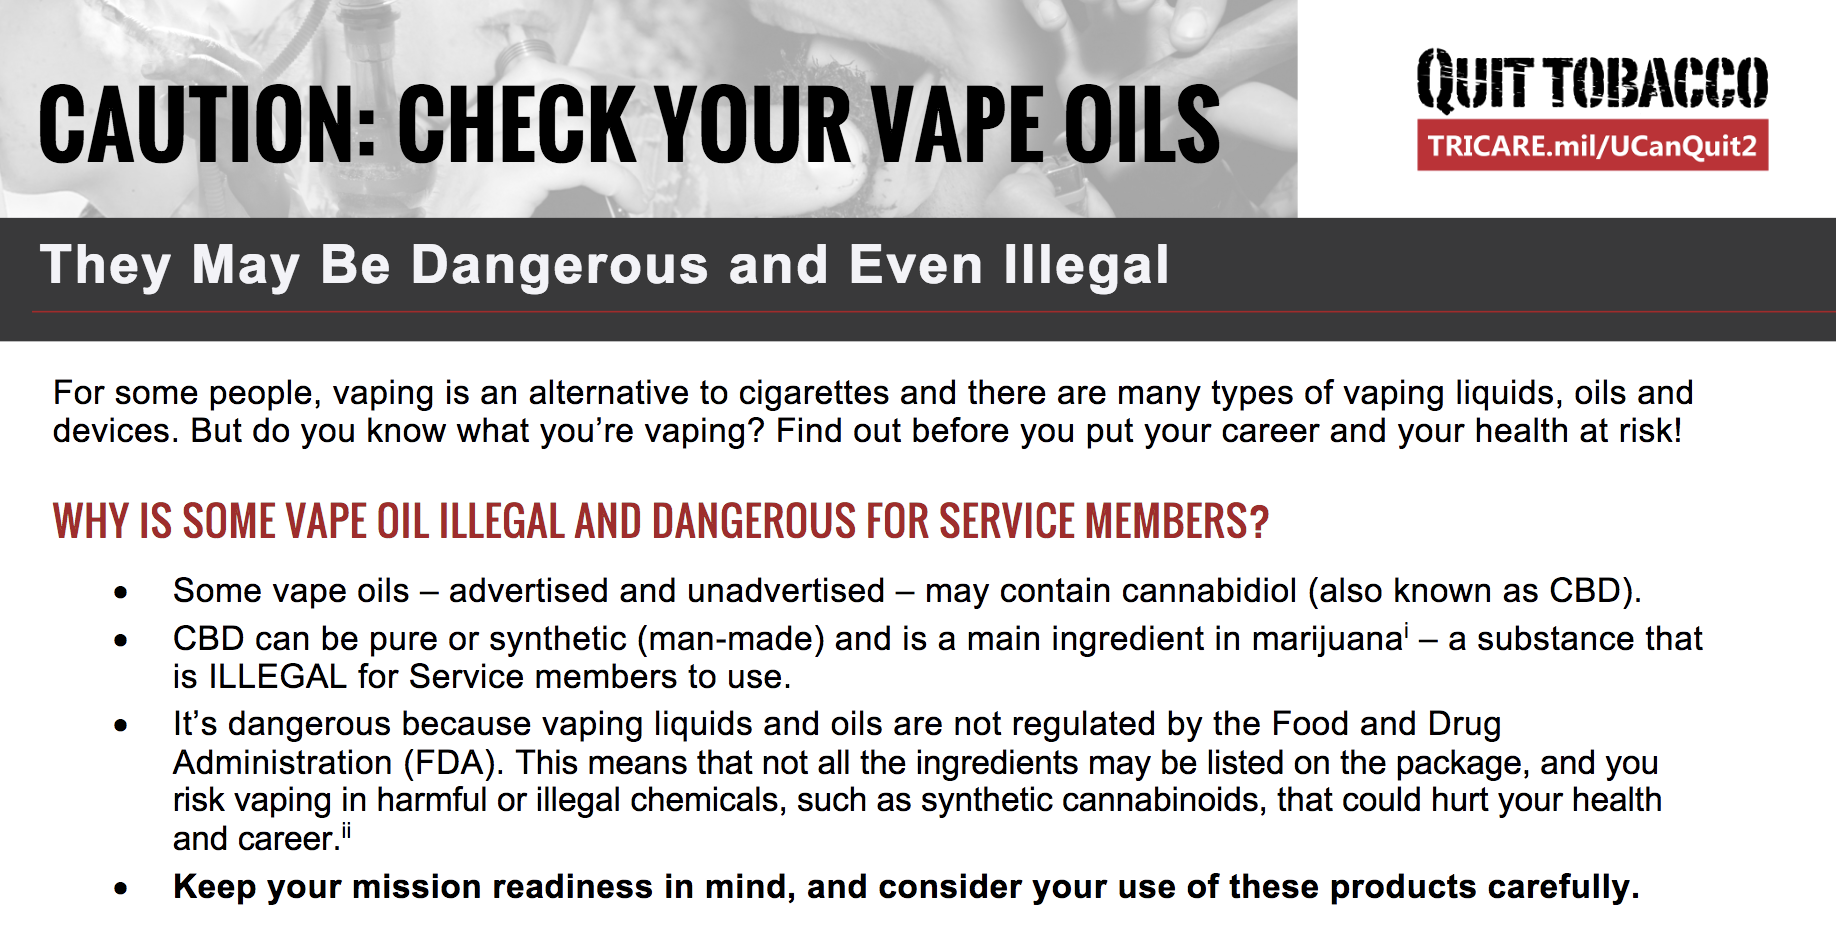 UCanQuit2 fact sheet on CBD and vape oils